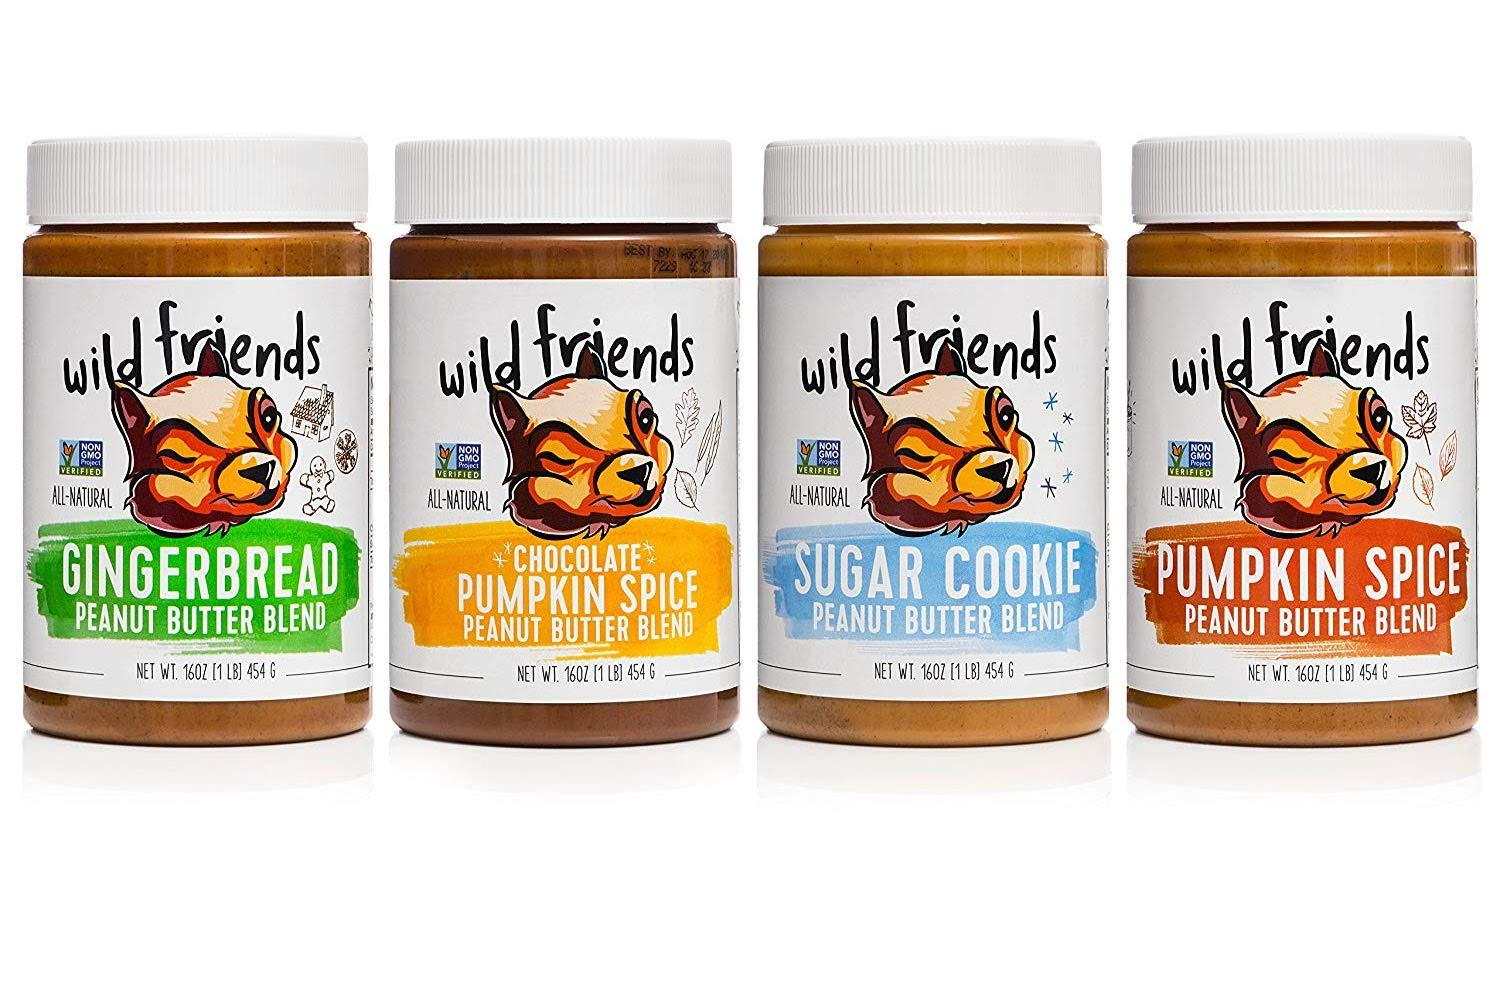 Wild Friends Foods All Natural Peanut Butter Variety Pack, Sugar Cookie, Gingerbread, Pumpkin Spice, Chocolate Pumpkin Spice, 16oz, Pack of 4